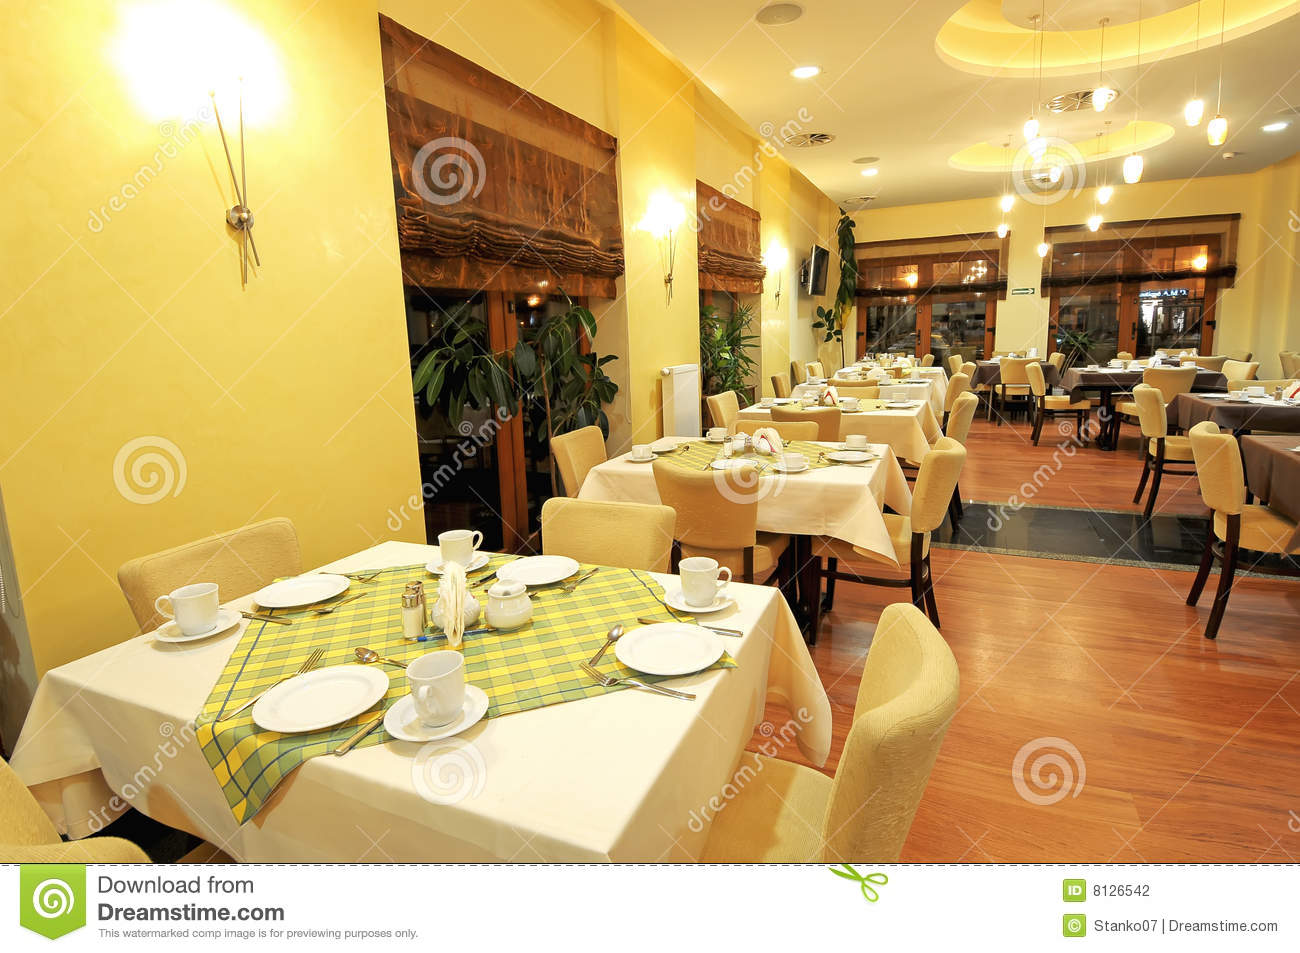 A view of large dining room